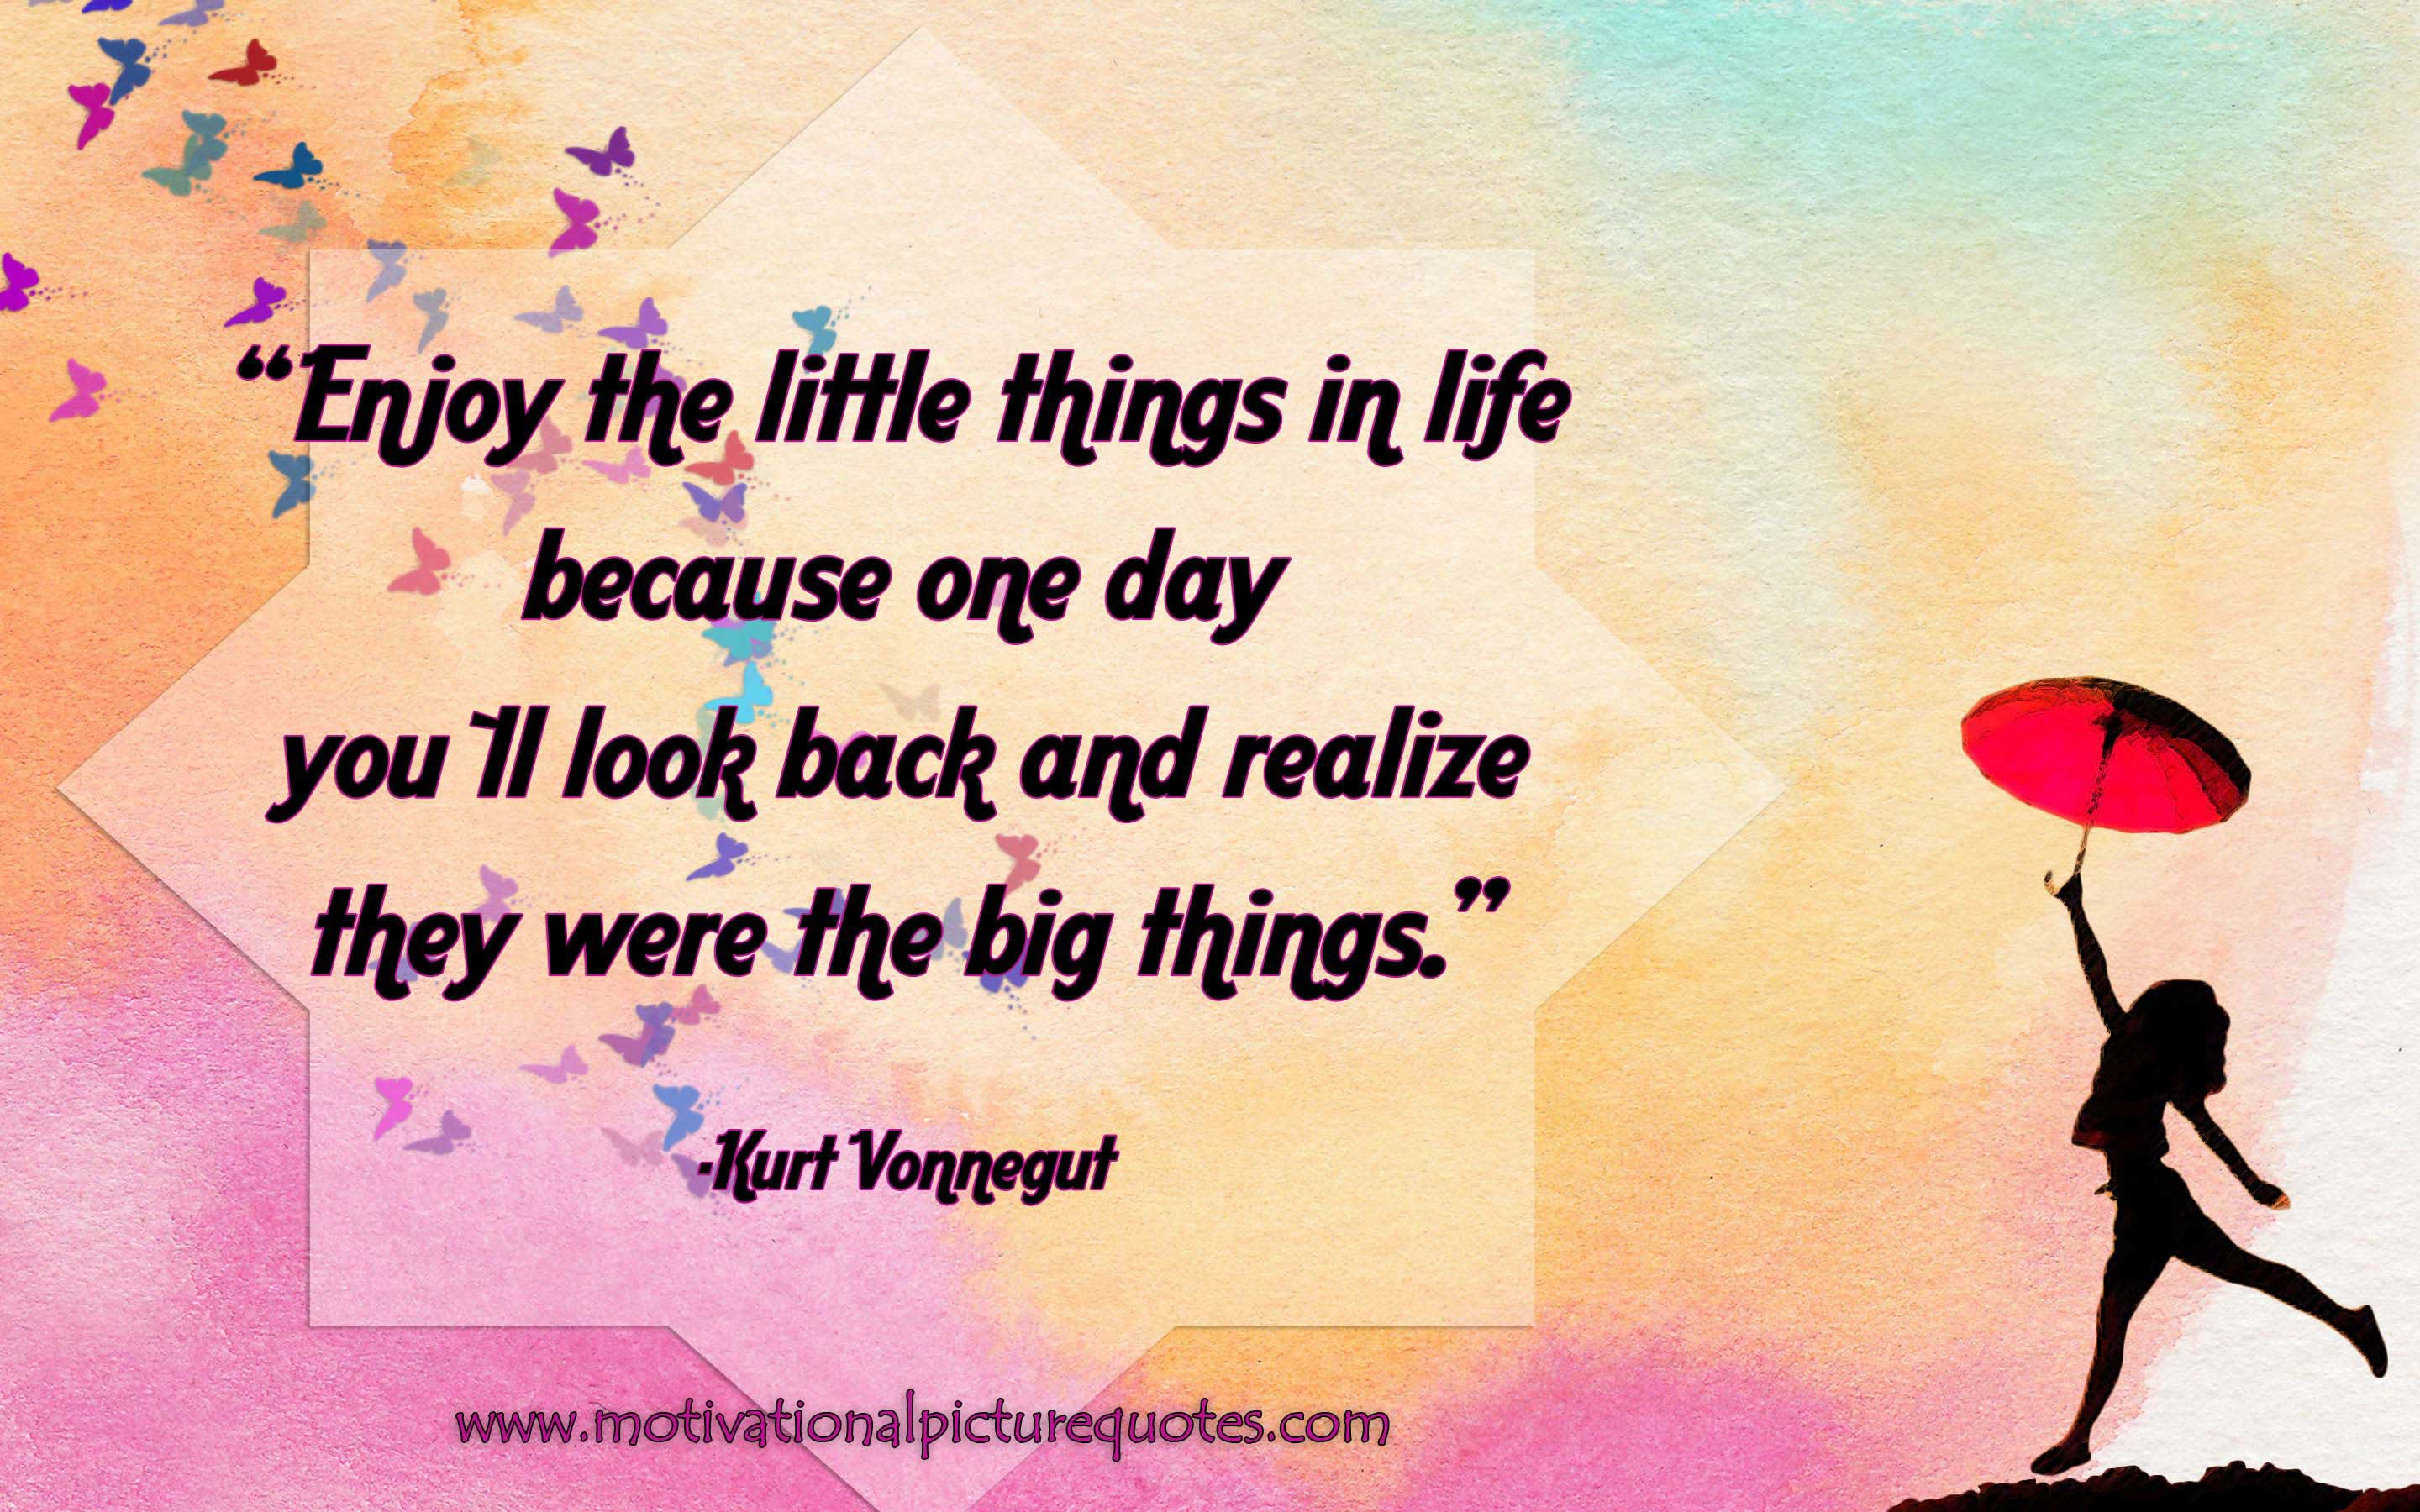 Great Quotes About Life By Kurt Vonnegut